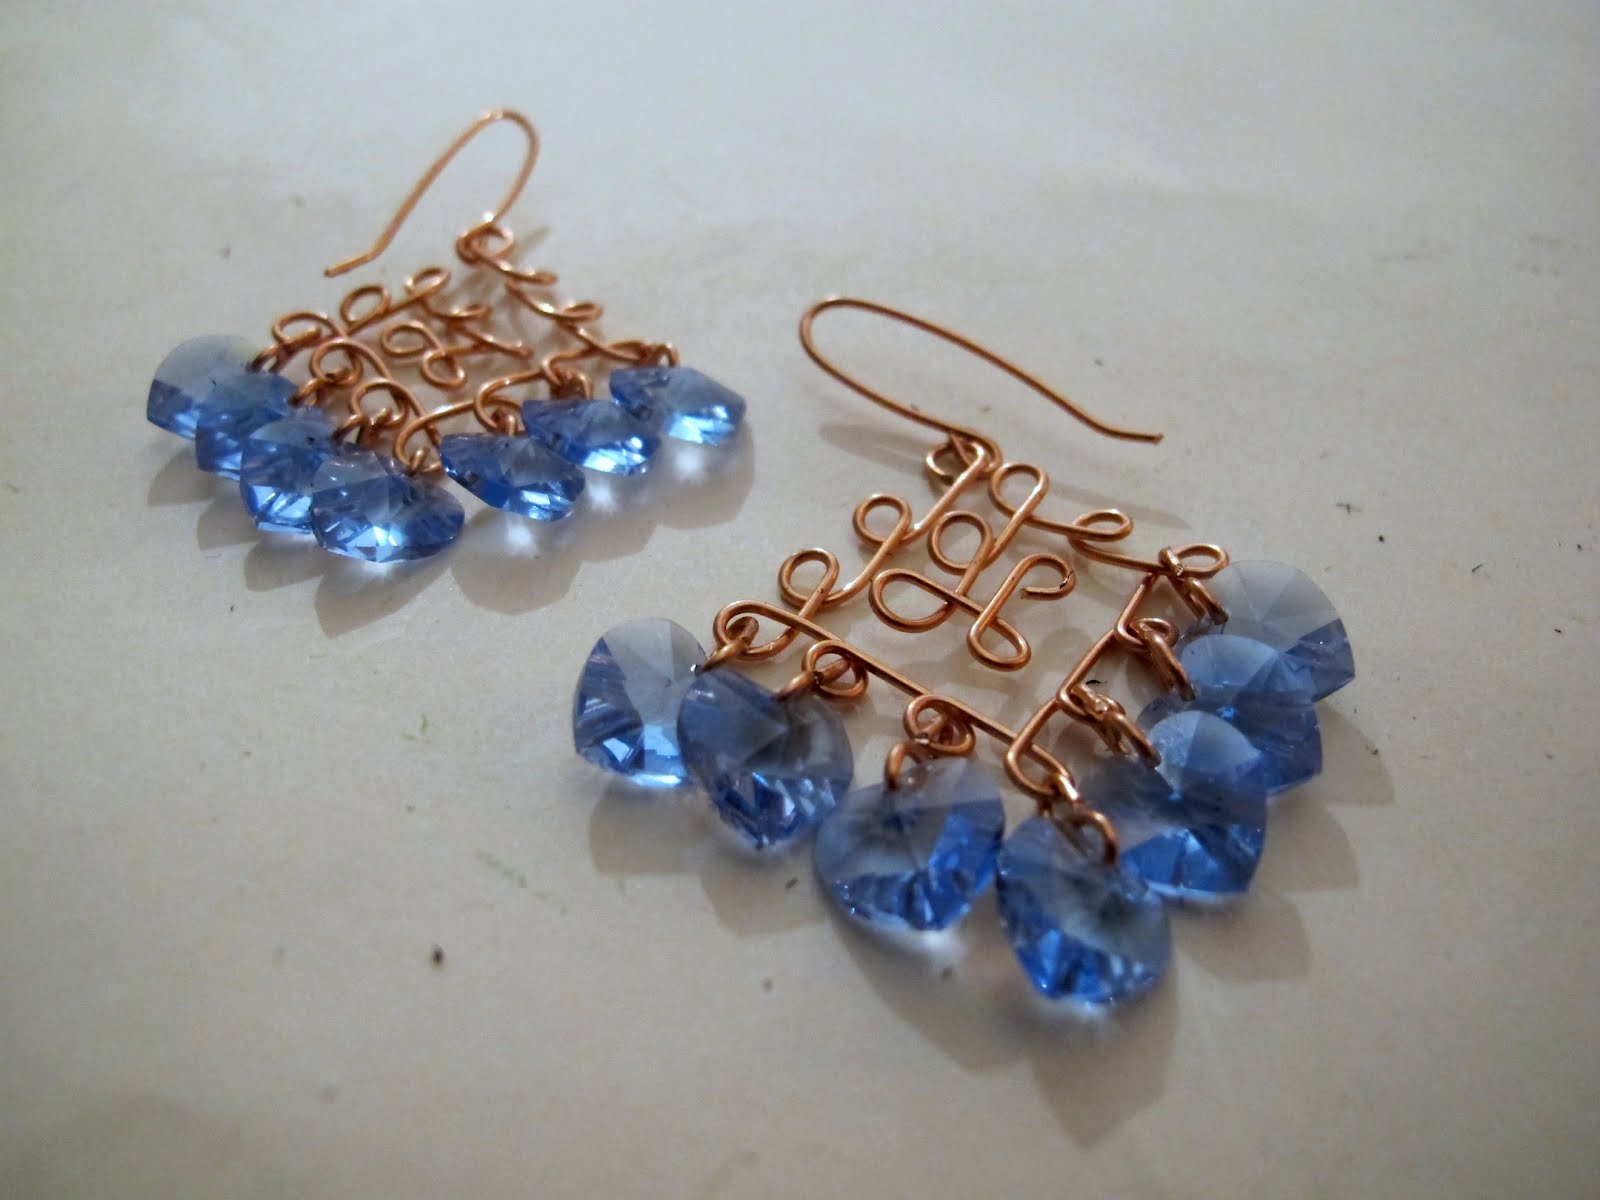 Wire Wrapped Chandelier Earrings With Swarovski Crystal Hearts And  Filigree Design I Think I've Used Every Color Imaginable!